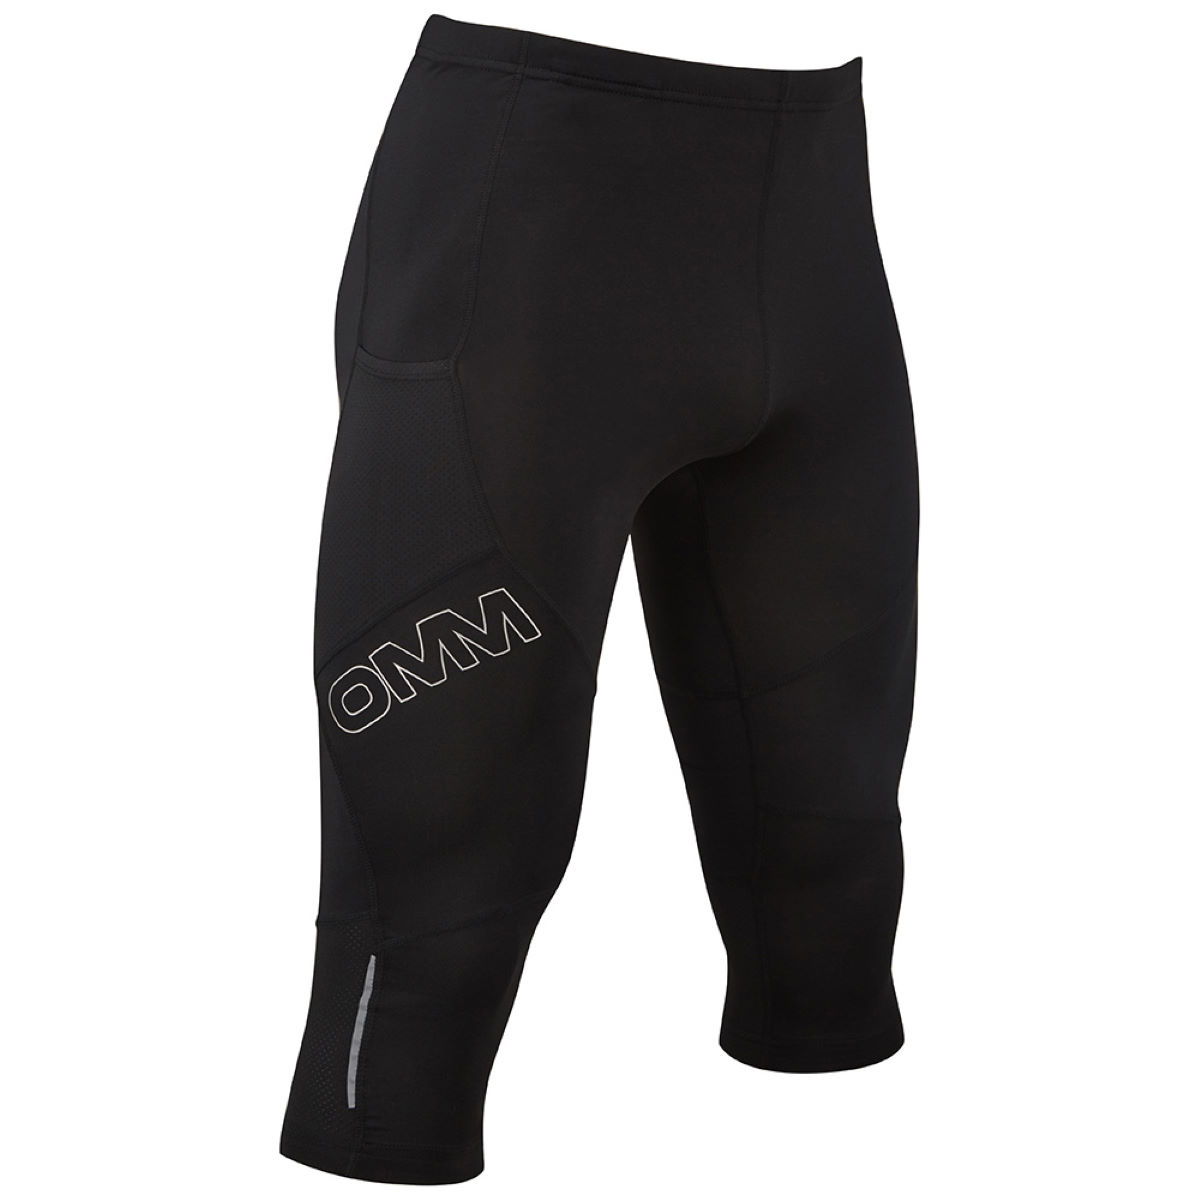 Collant OMM Flash 0,75 - S Noir  Shorts